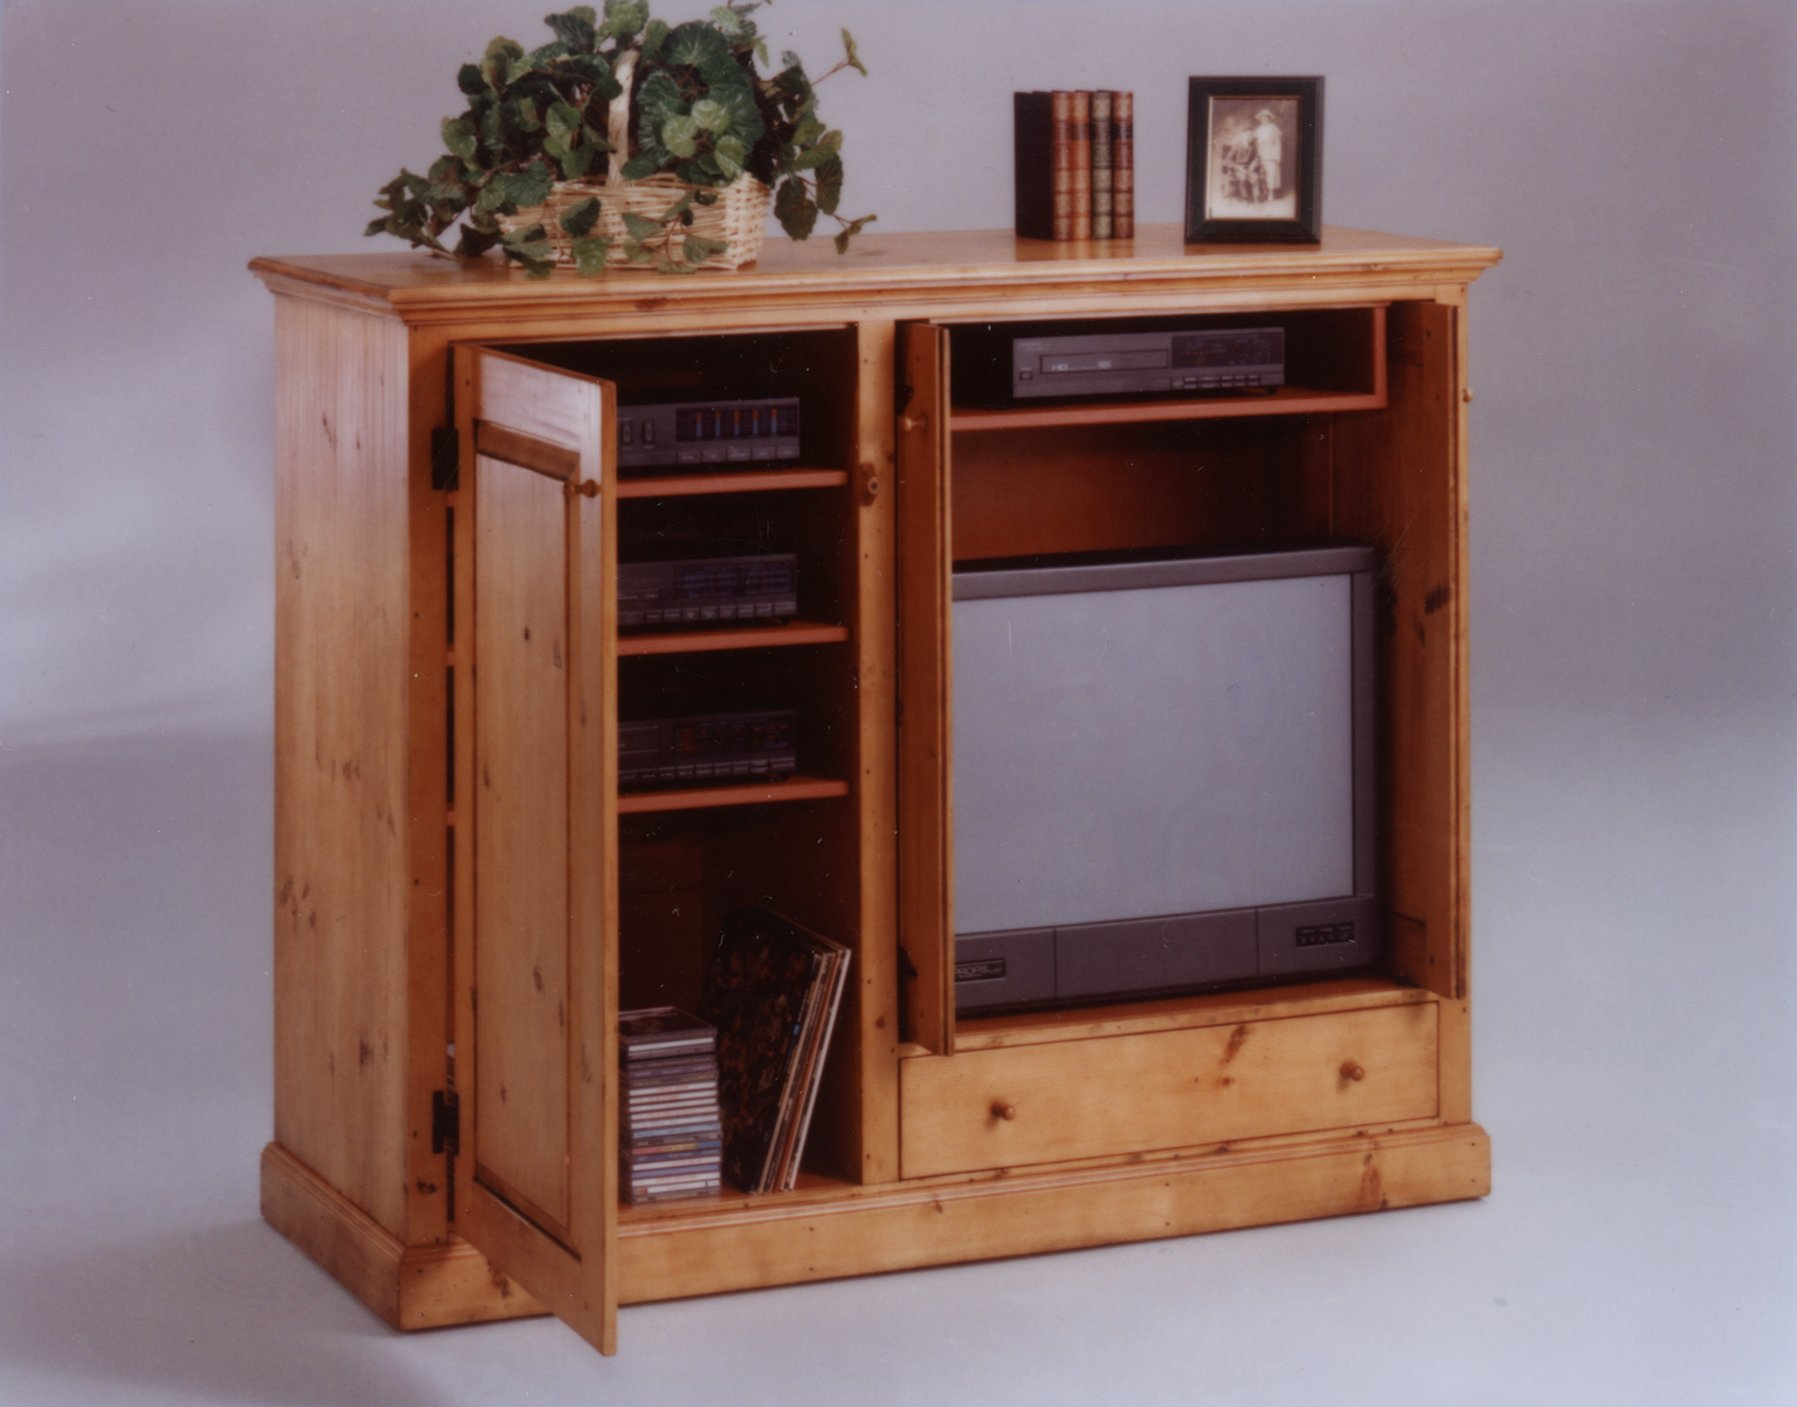 Small wood projects wooden entertainment center plans Wood entertainment center